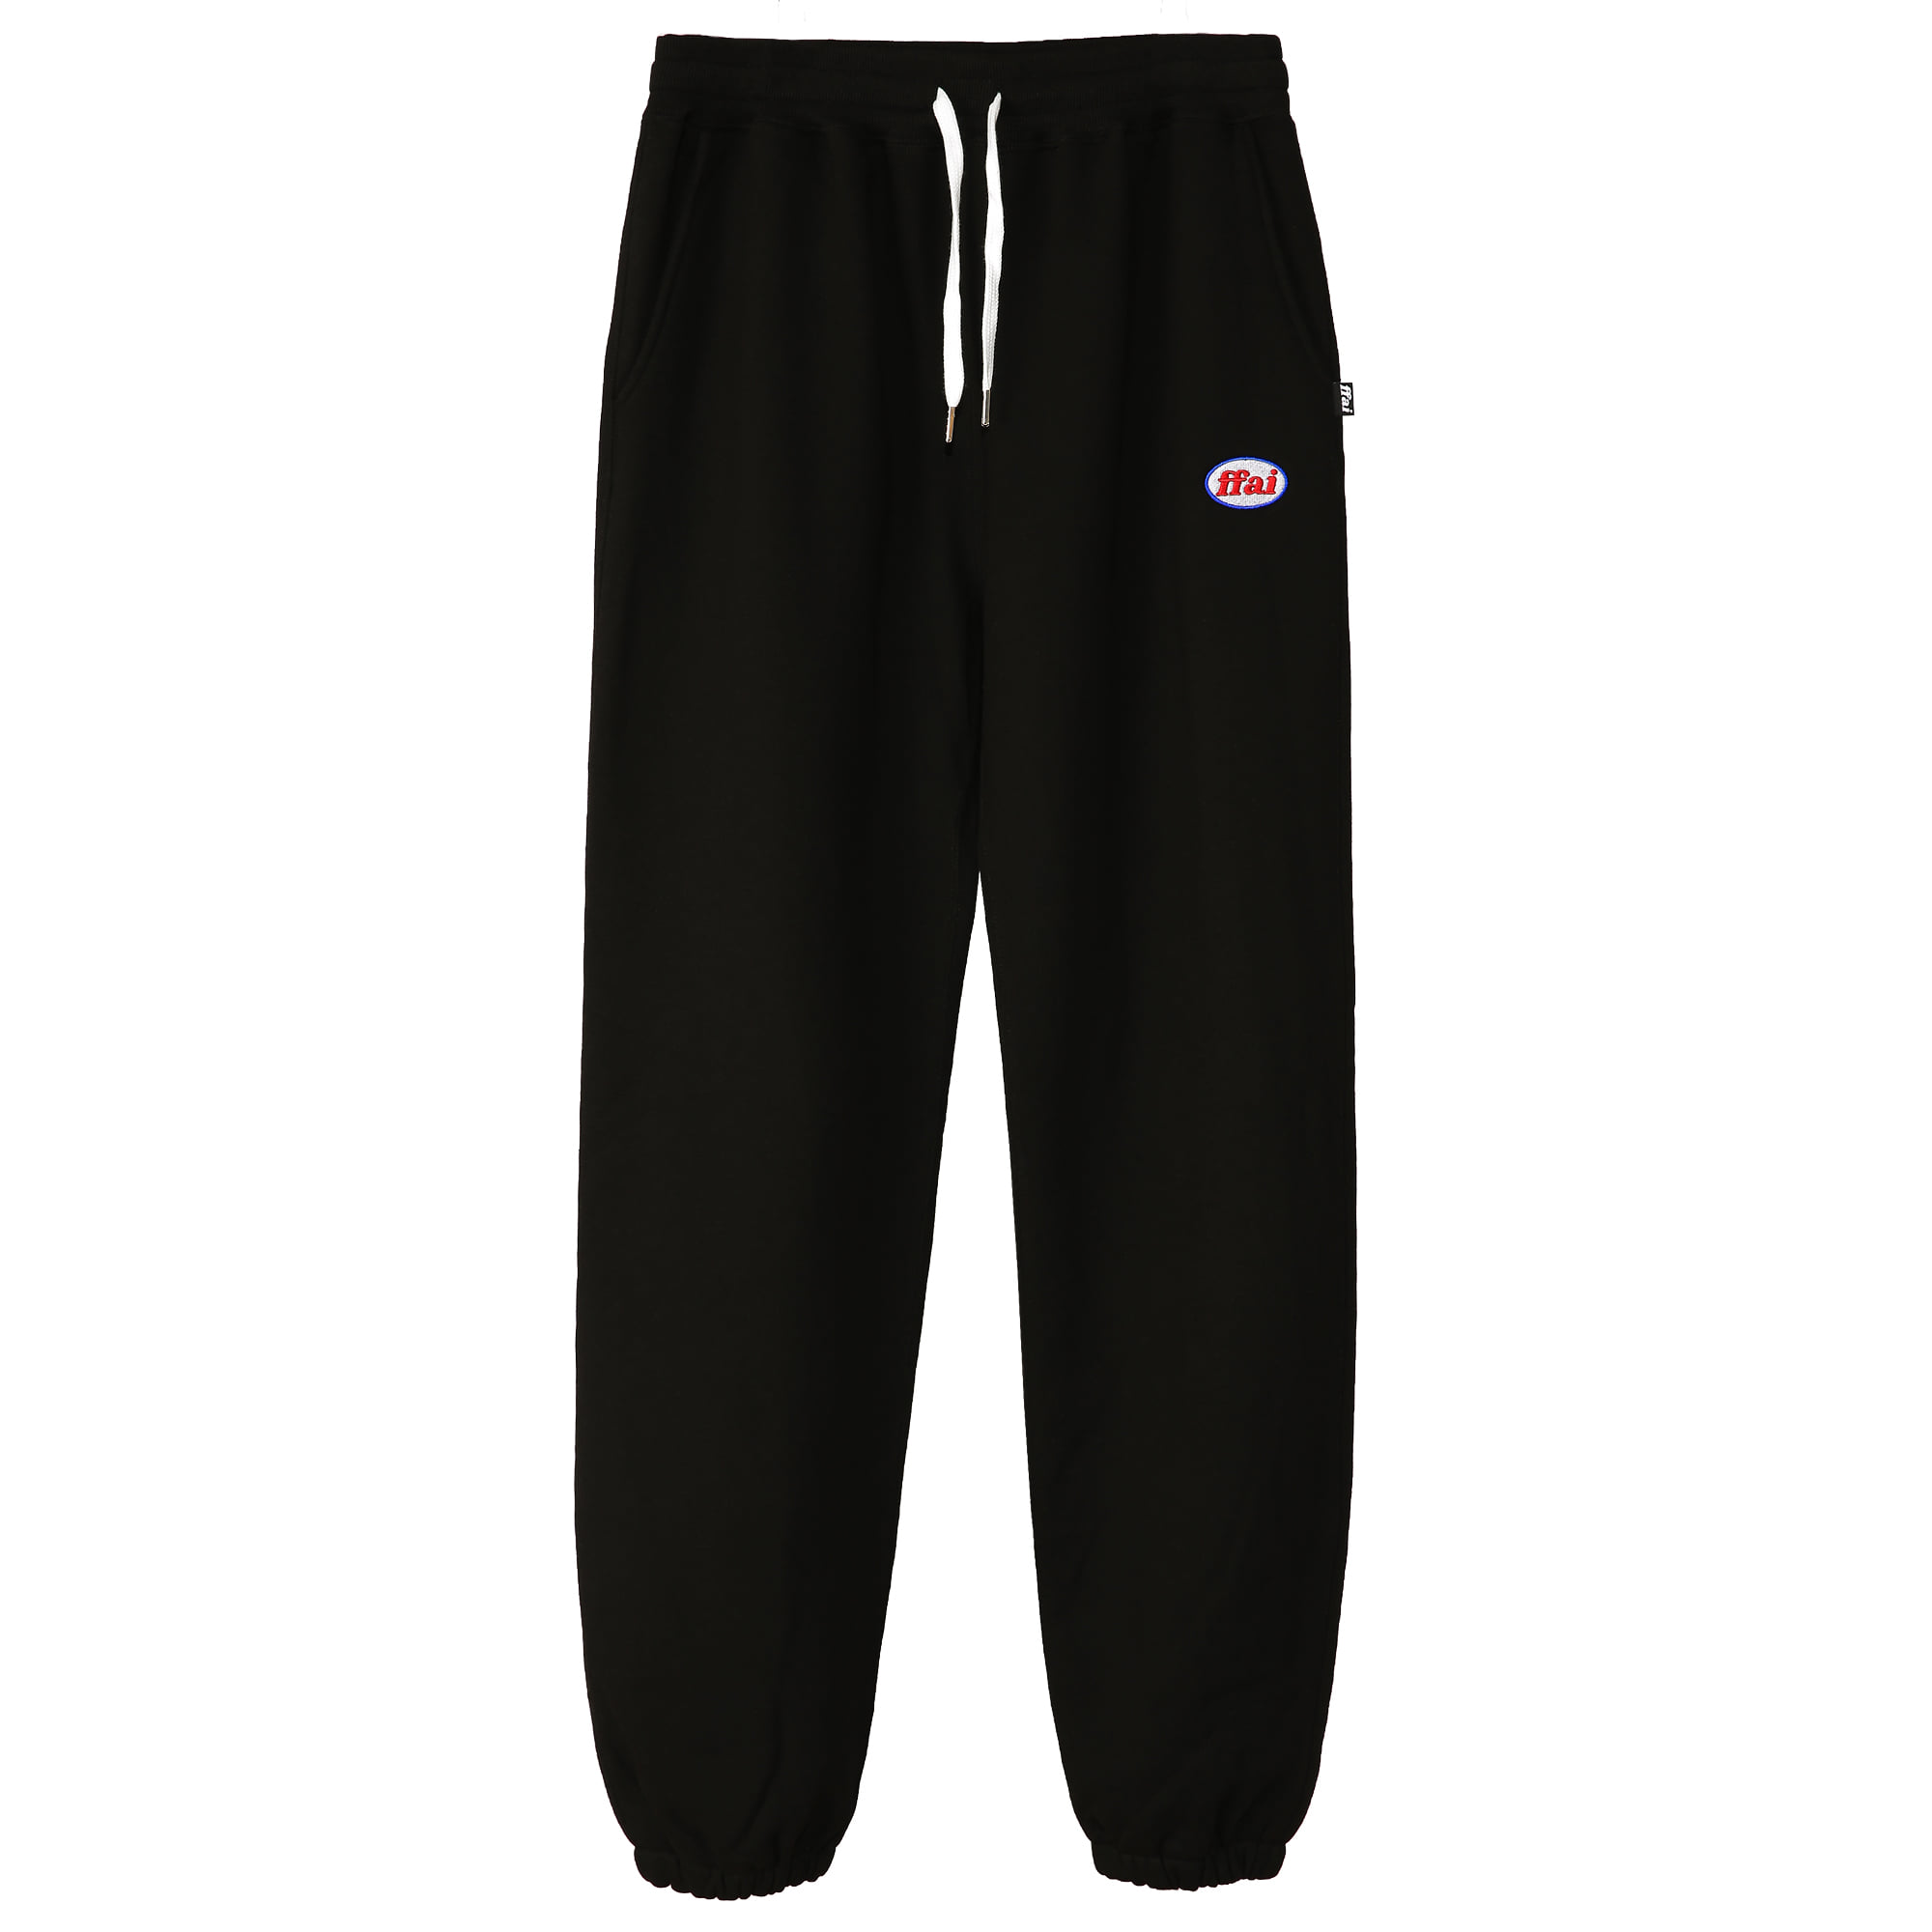 -[FFAI]  - OP.30 SWEAT PANTS (BLACK)